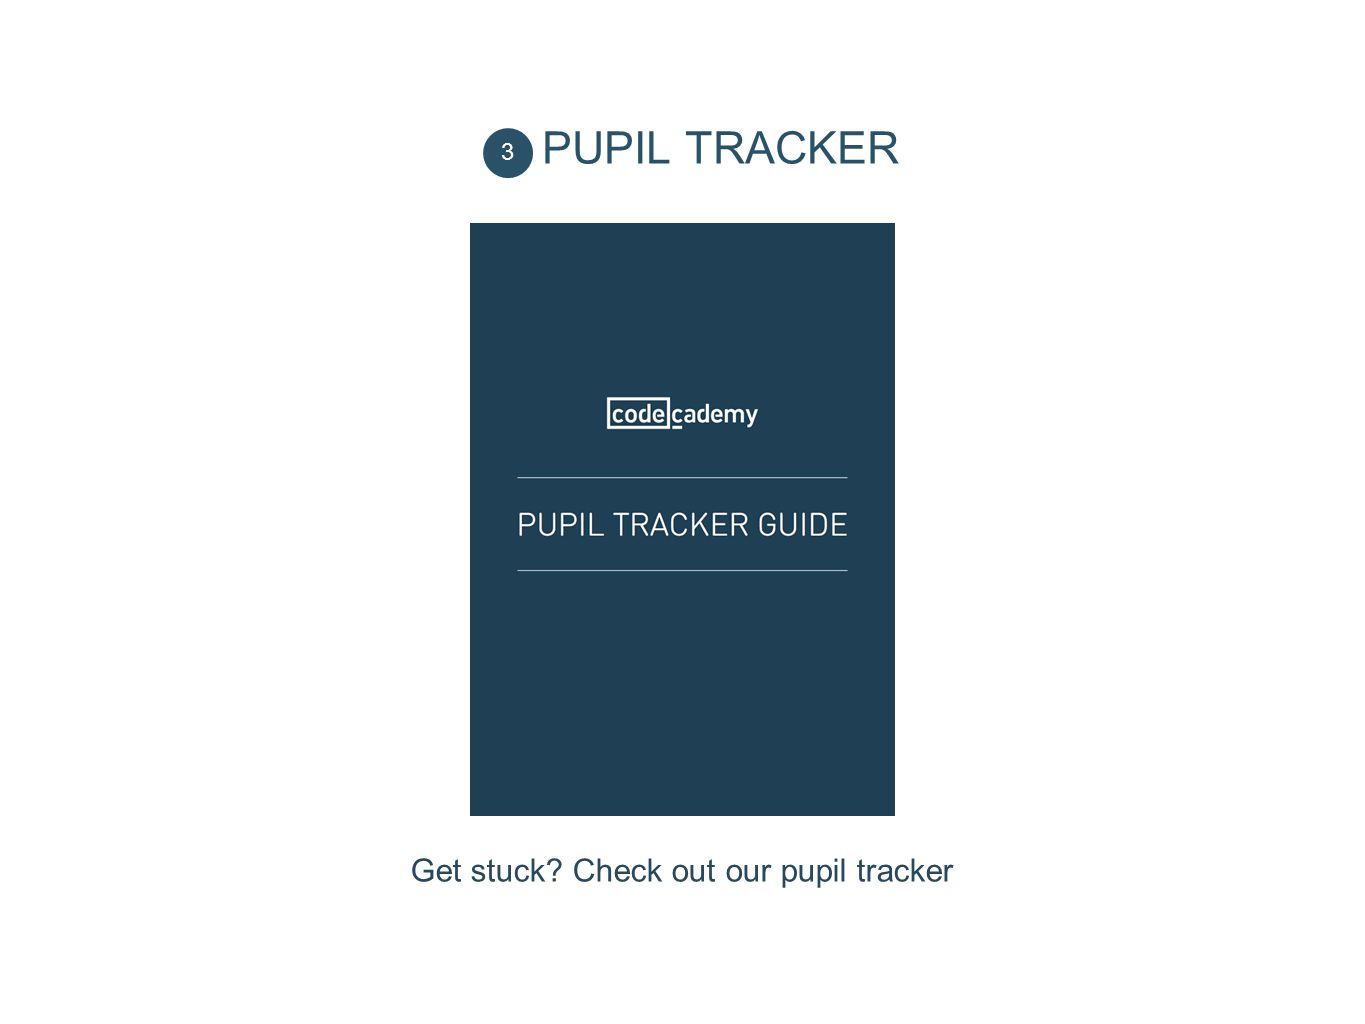 3 PUPIL TRACKER Get stuck? Check out our pupil tracker